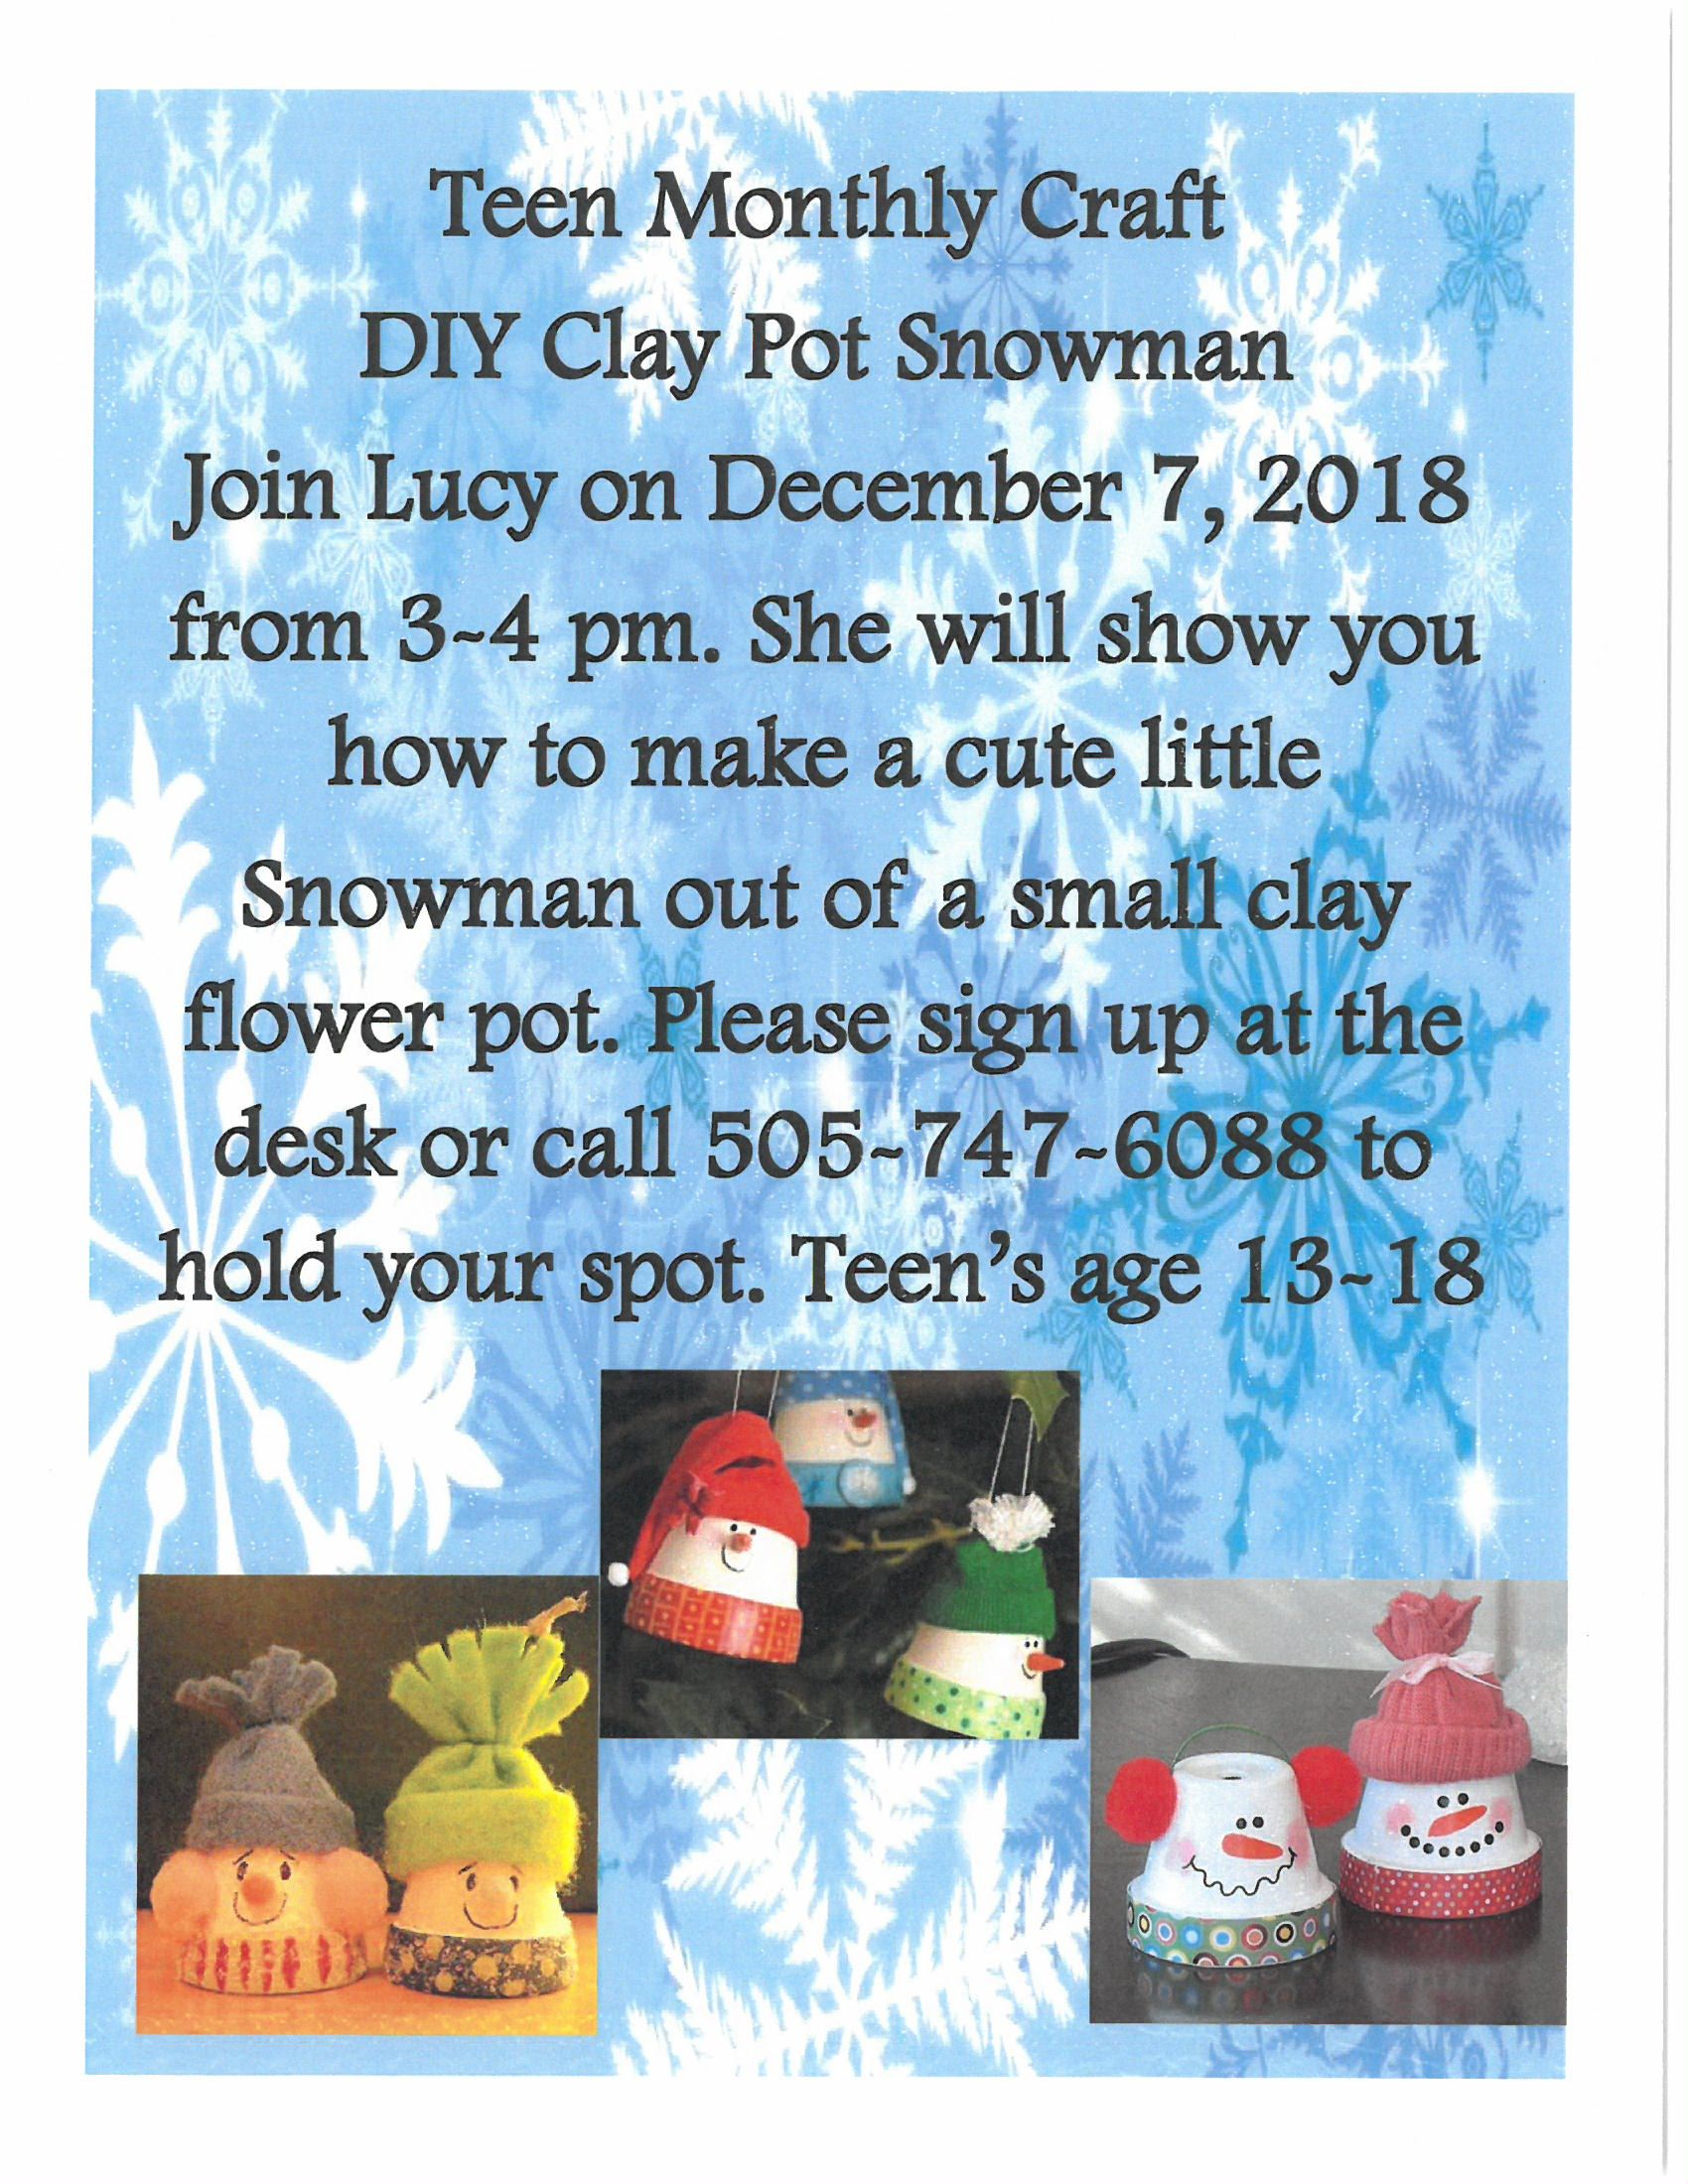 DIY Clay Pot Snowman